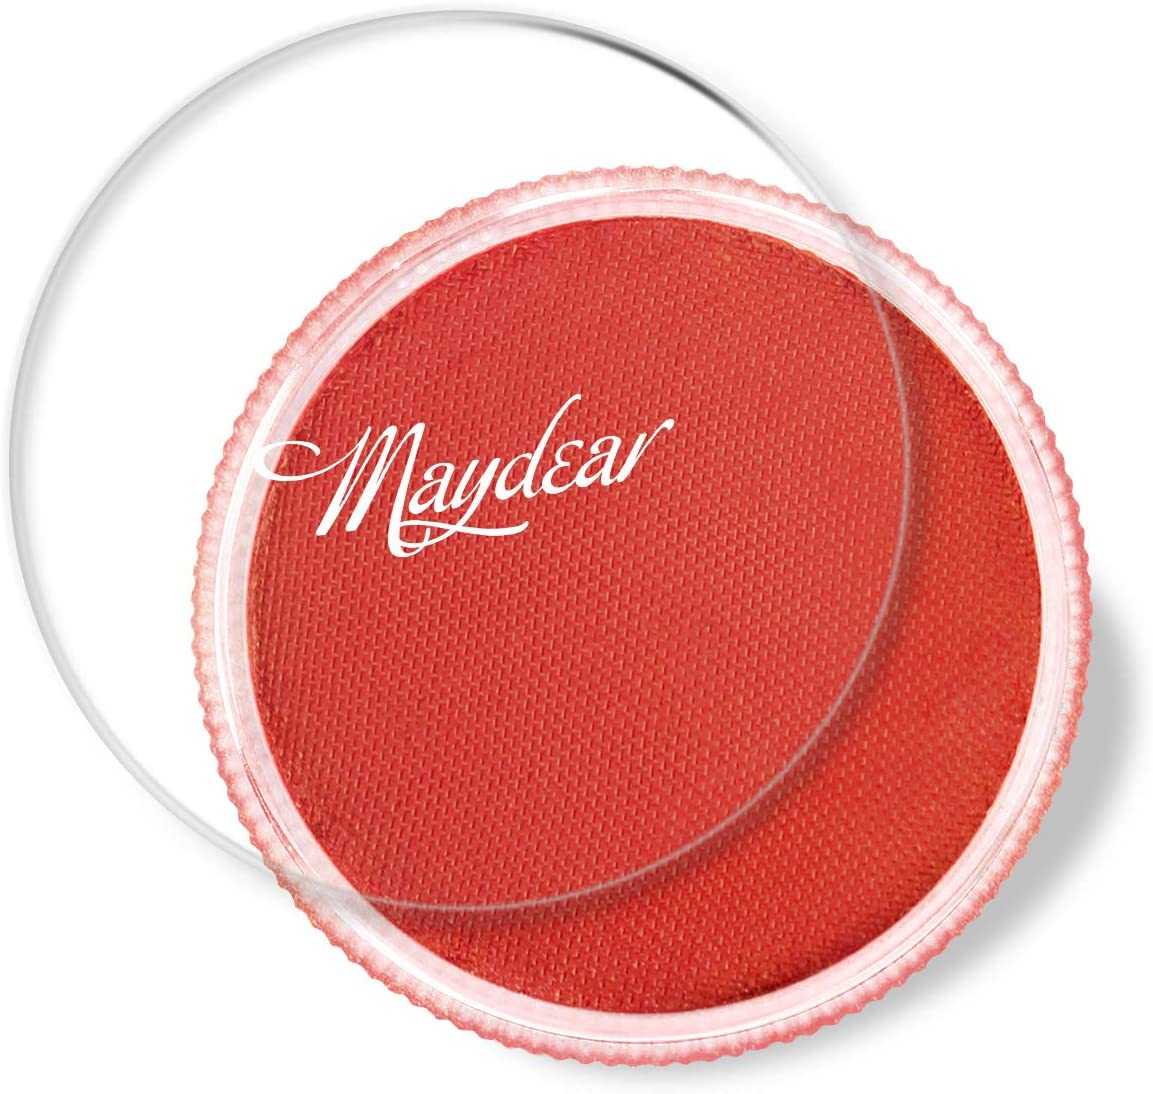 Maydear Face Body Paint Red,Classic Single,Professional Face Paint Palette,Large Water Based Paints (30g)